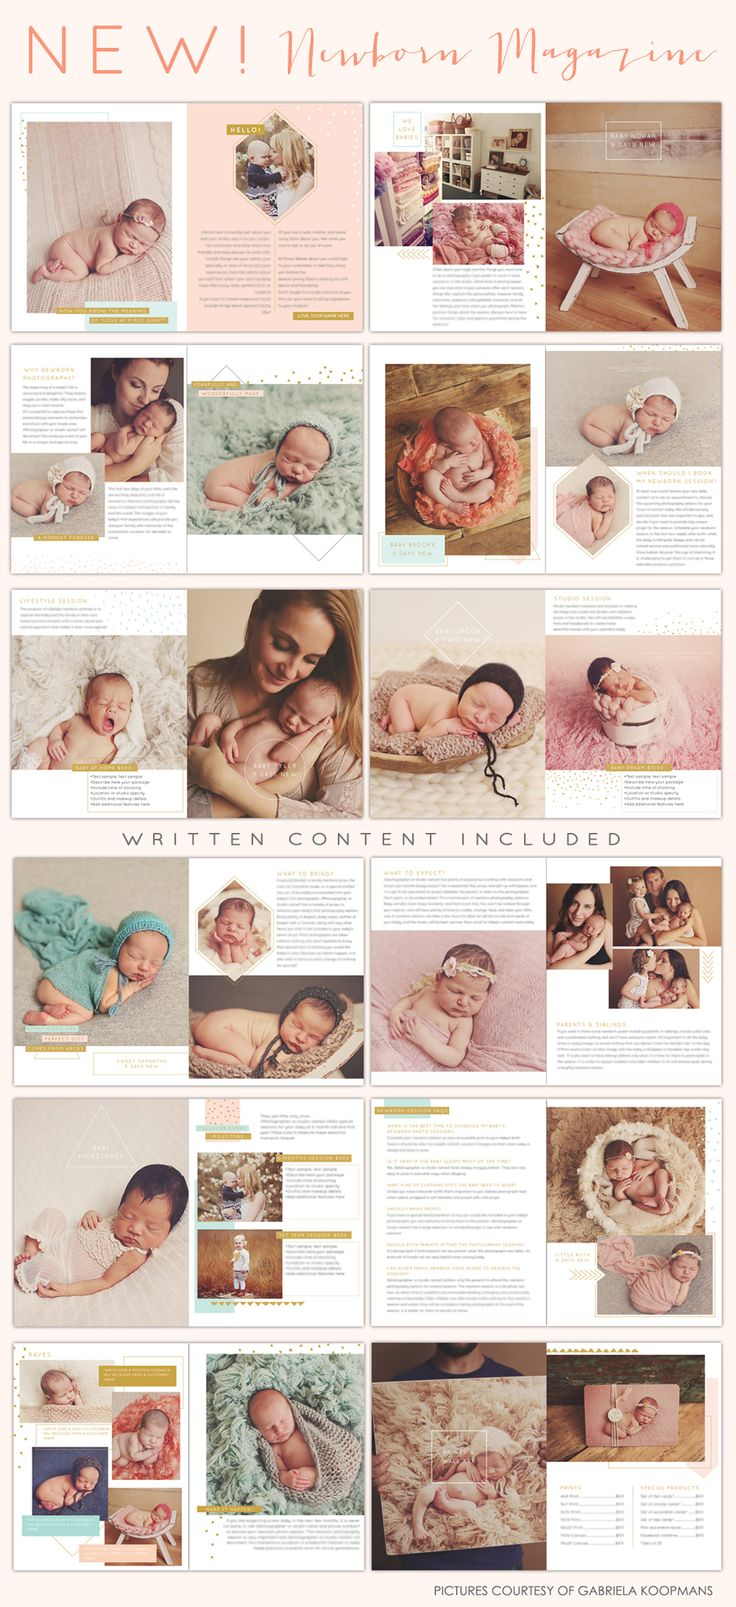 NEW!! Newborn Photography Magazine | Photoshop templates to create a professional studio magazine - use printed or digitally :)